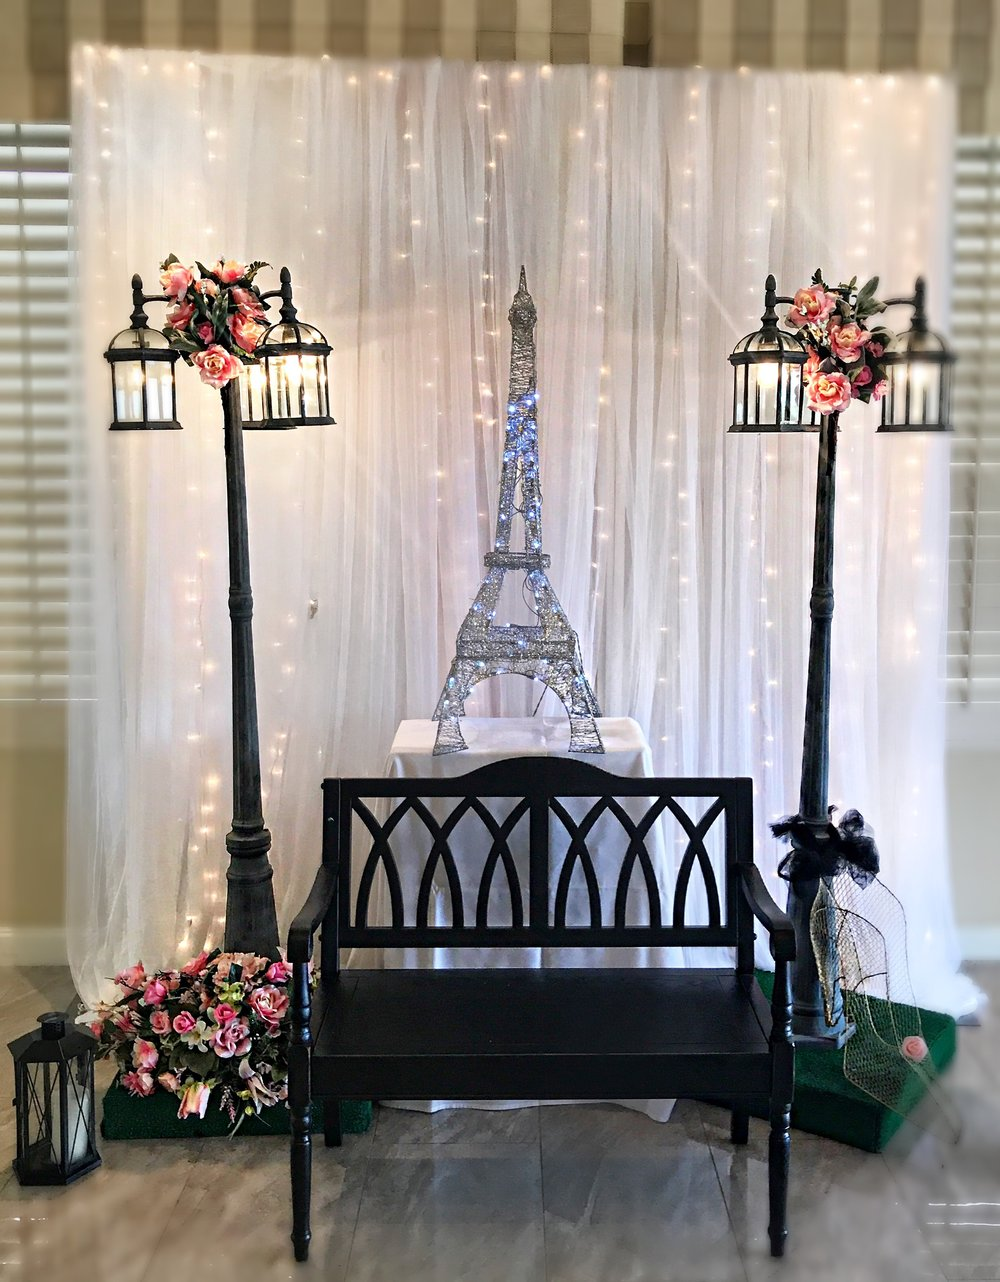 West palm beach event florist